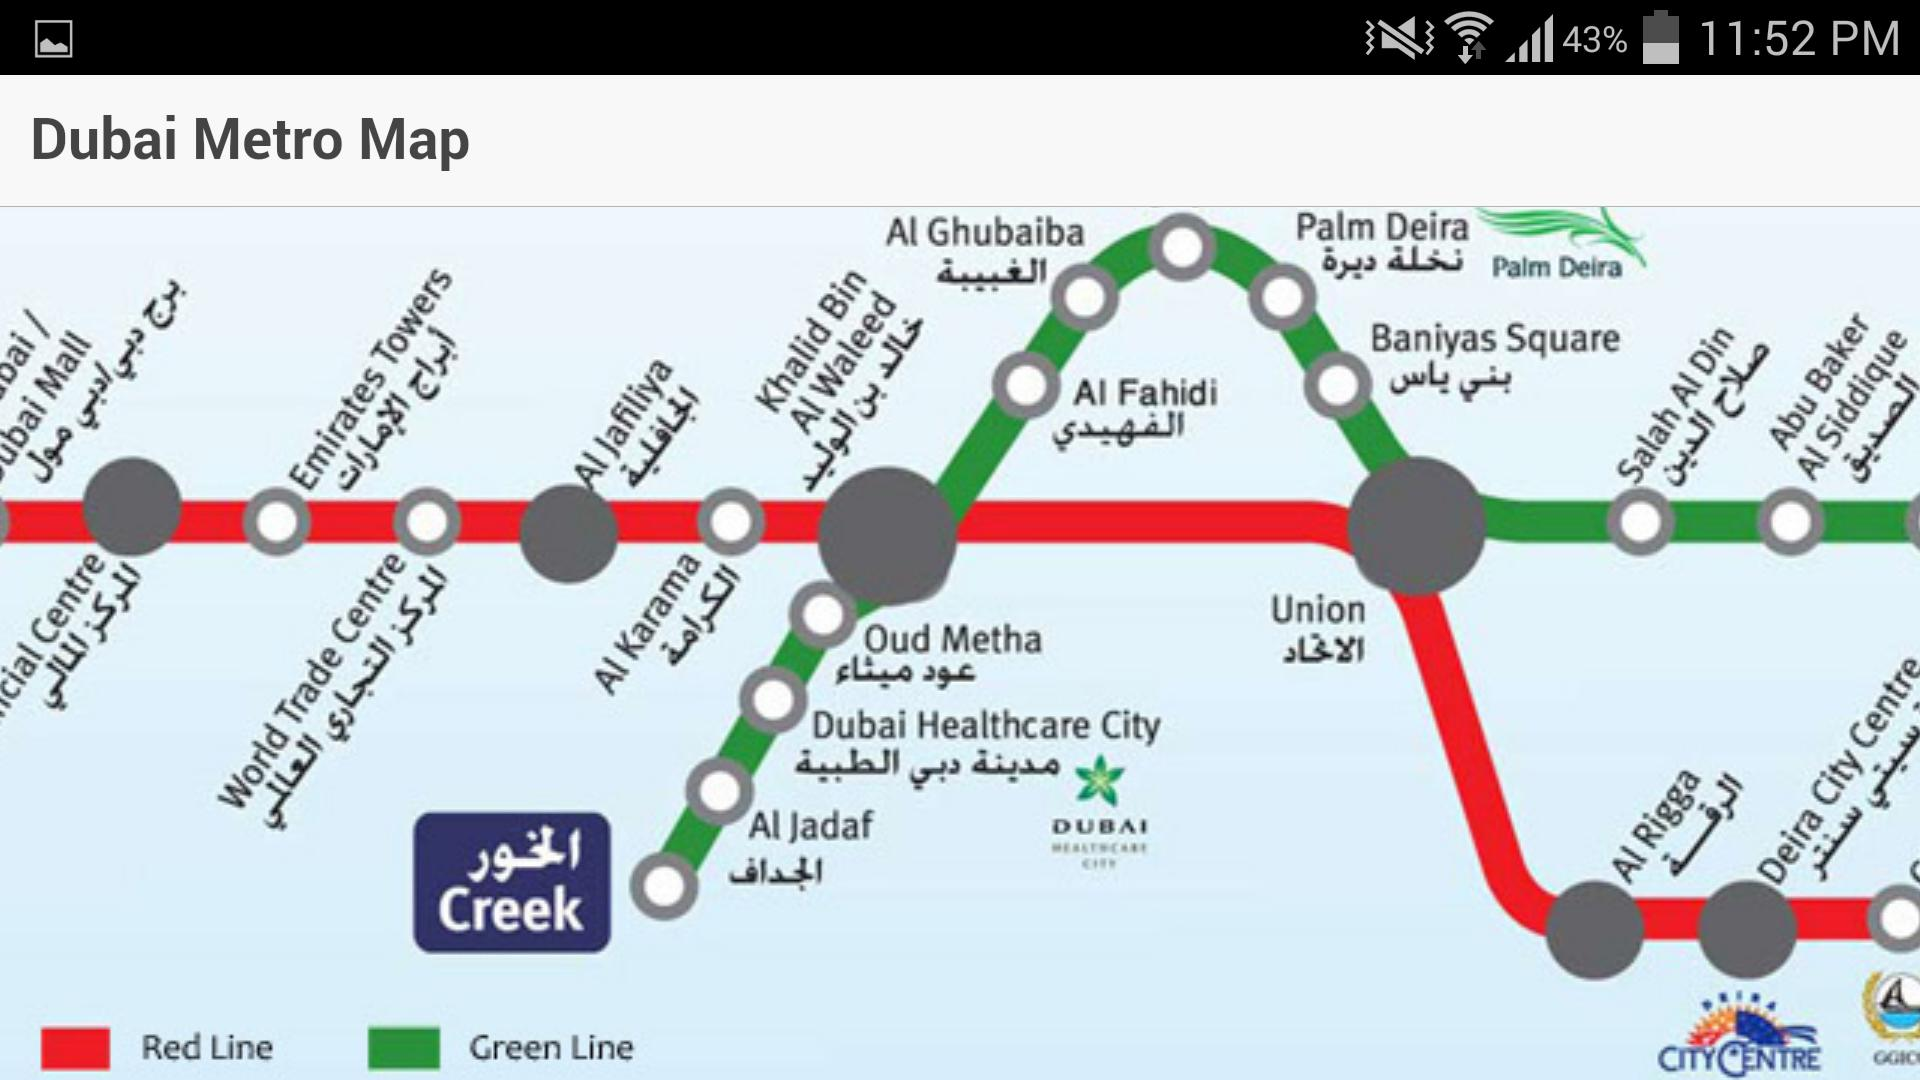 Dubai Metro Map for Android - APK Download on